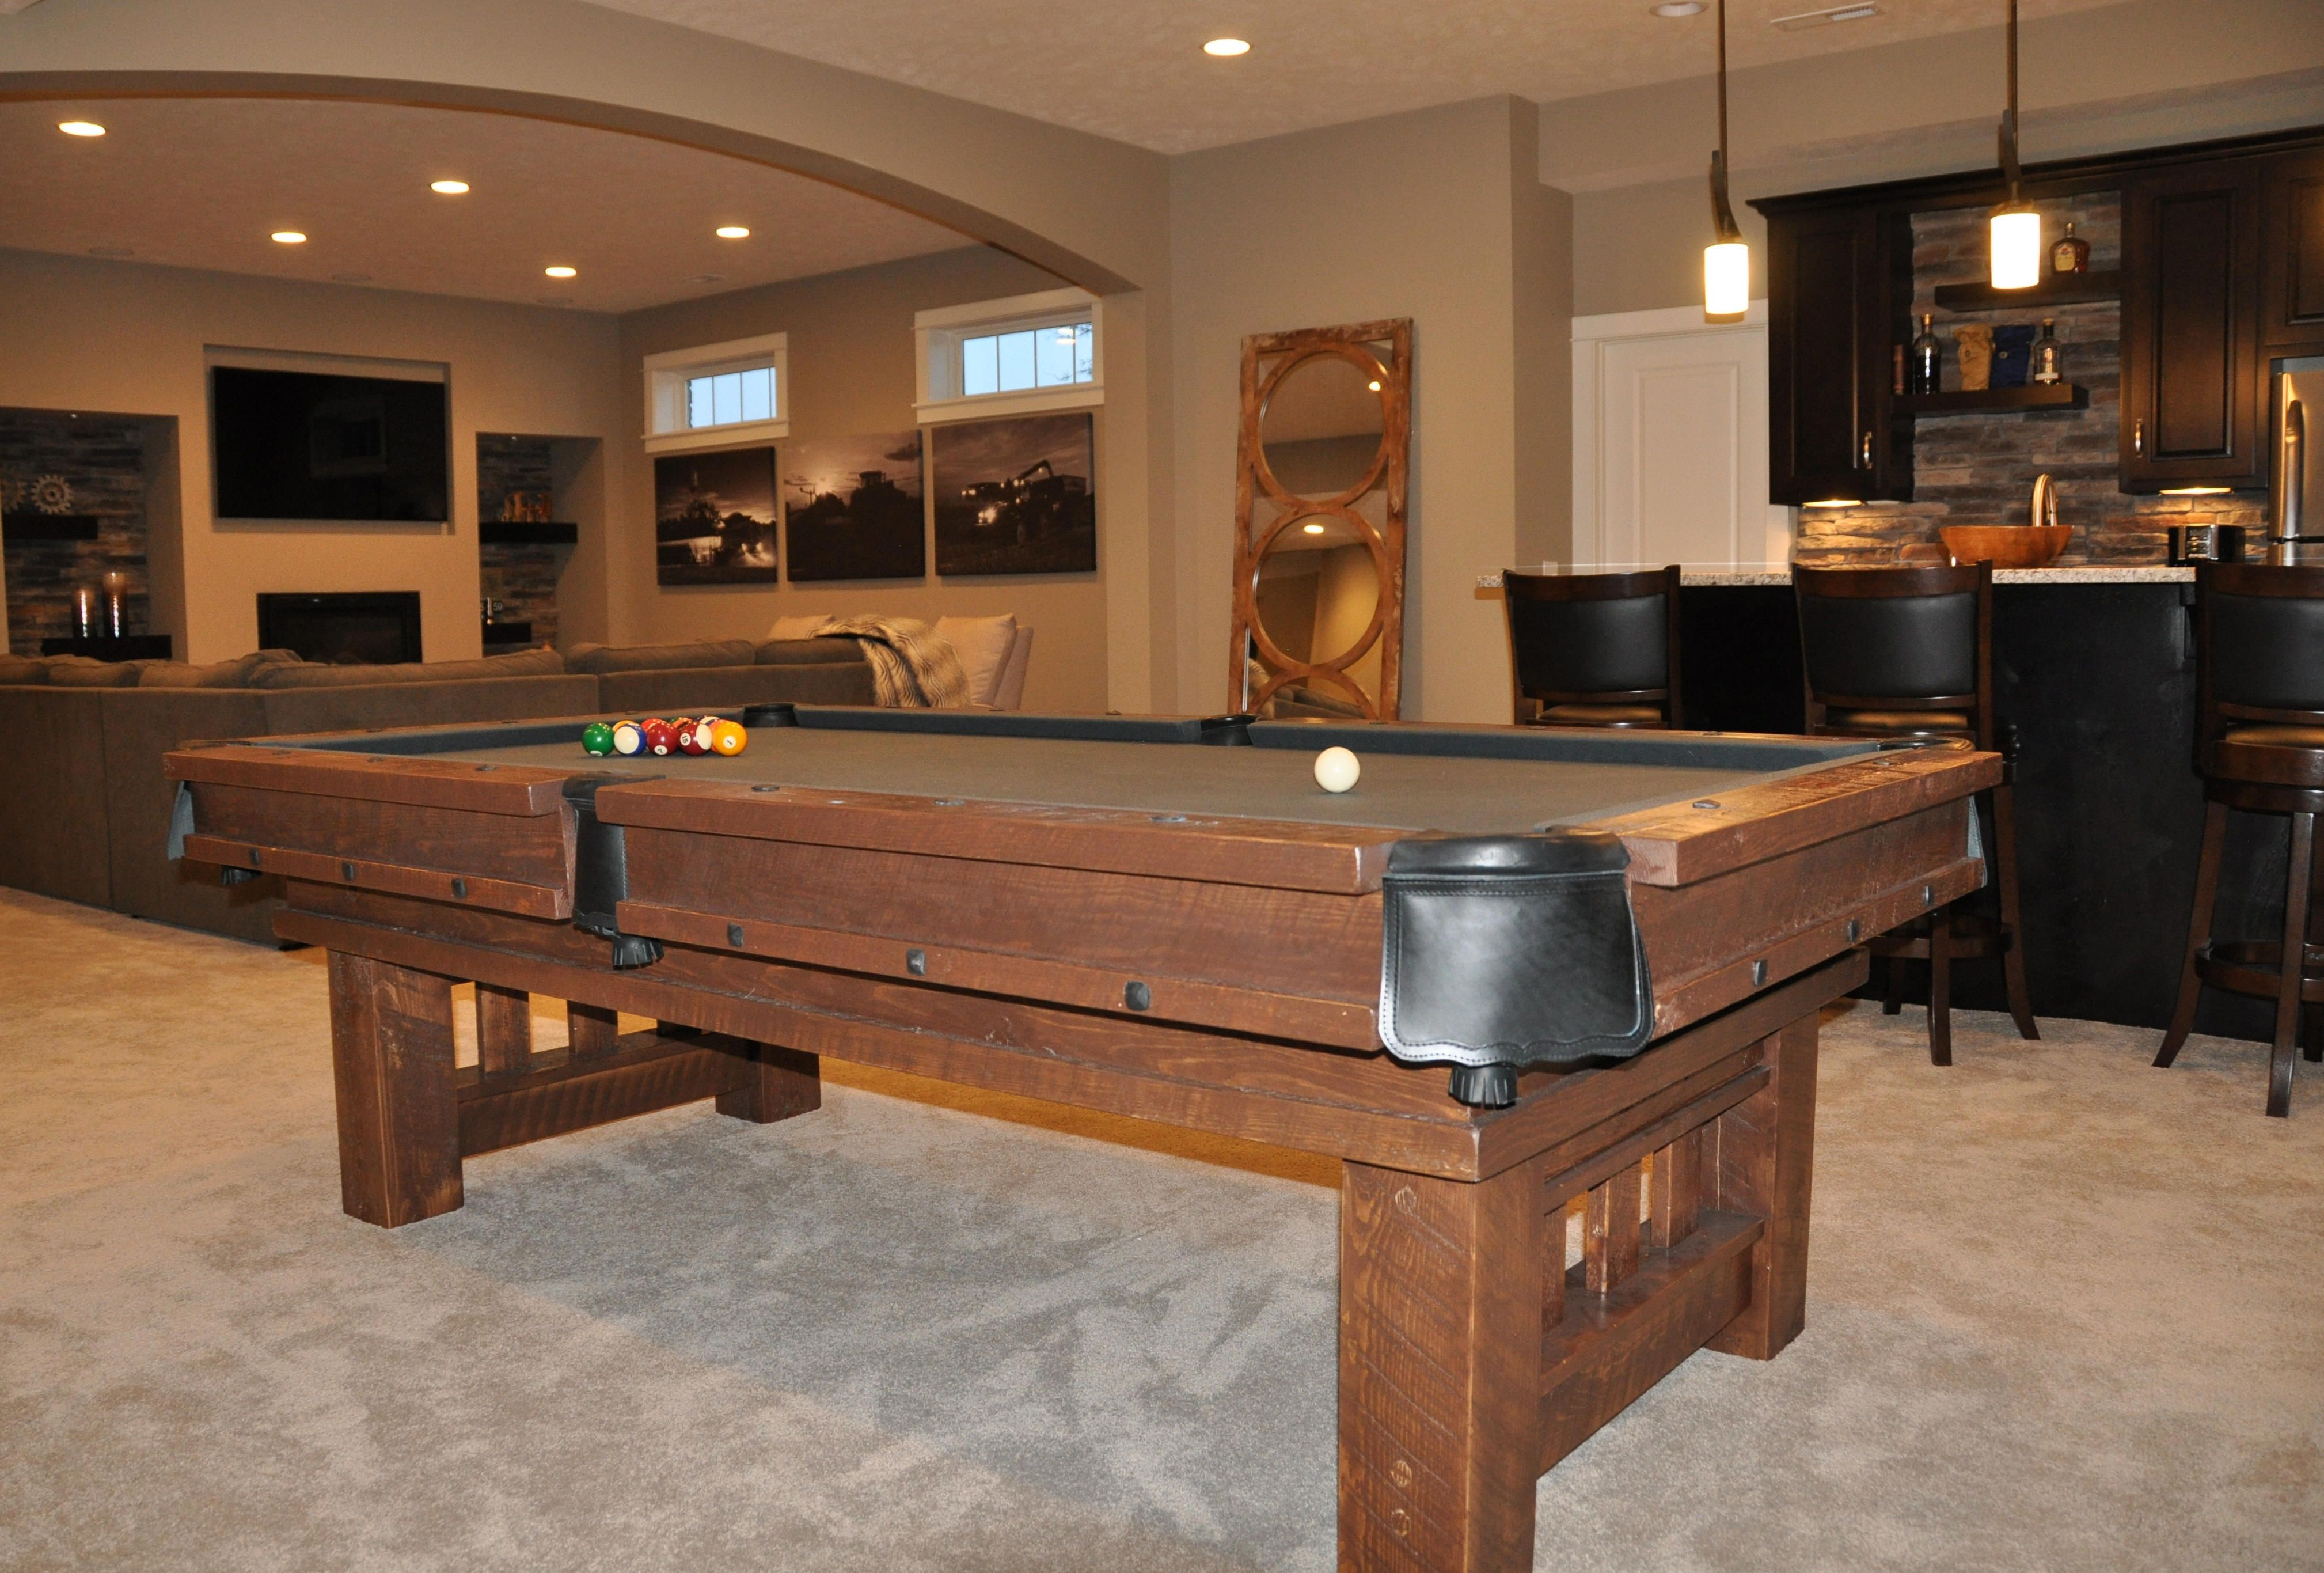 Amazing Accessories U0026 Furniture, Eye Catching Pool Table Design With Vintage Pool  Table On Beige Rug And Enchanting Black Wooden Bar Island Complete With  Wooden Bar ...